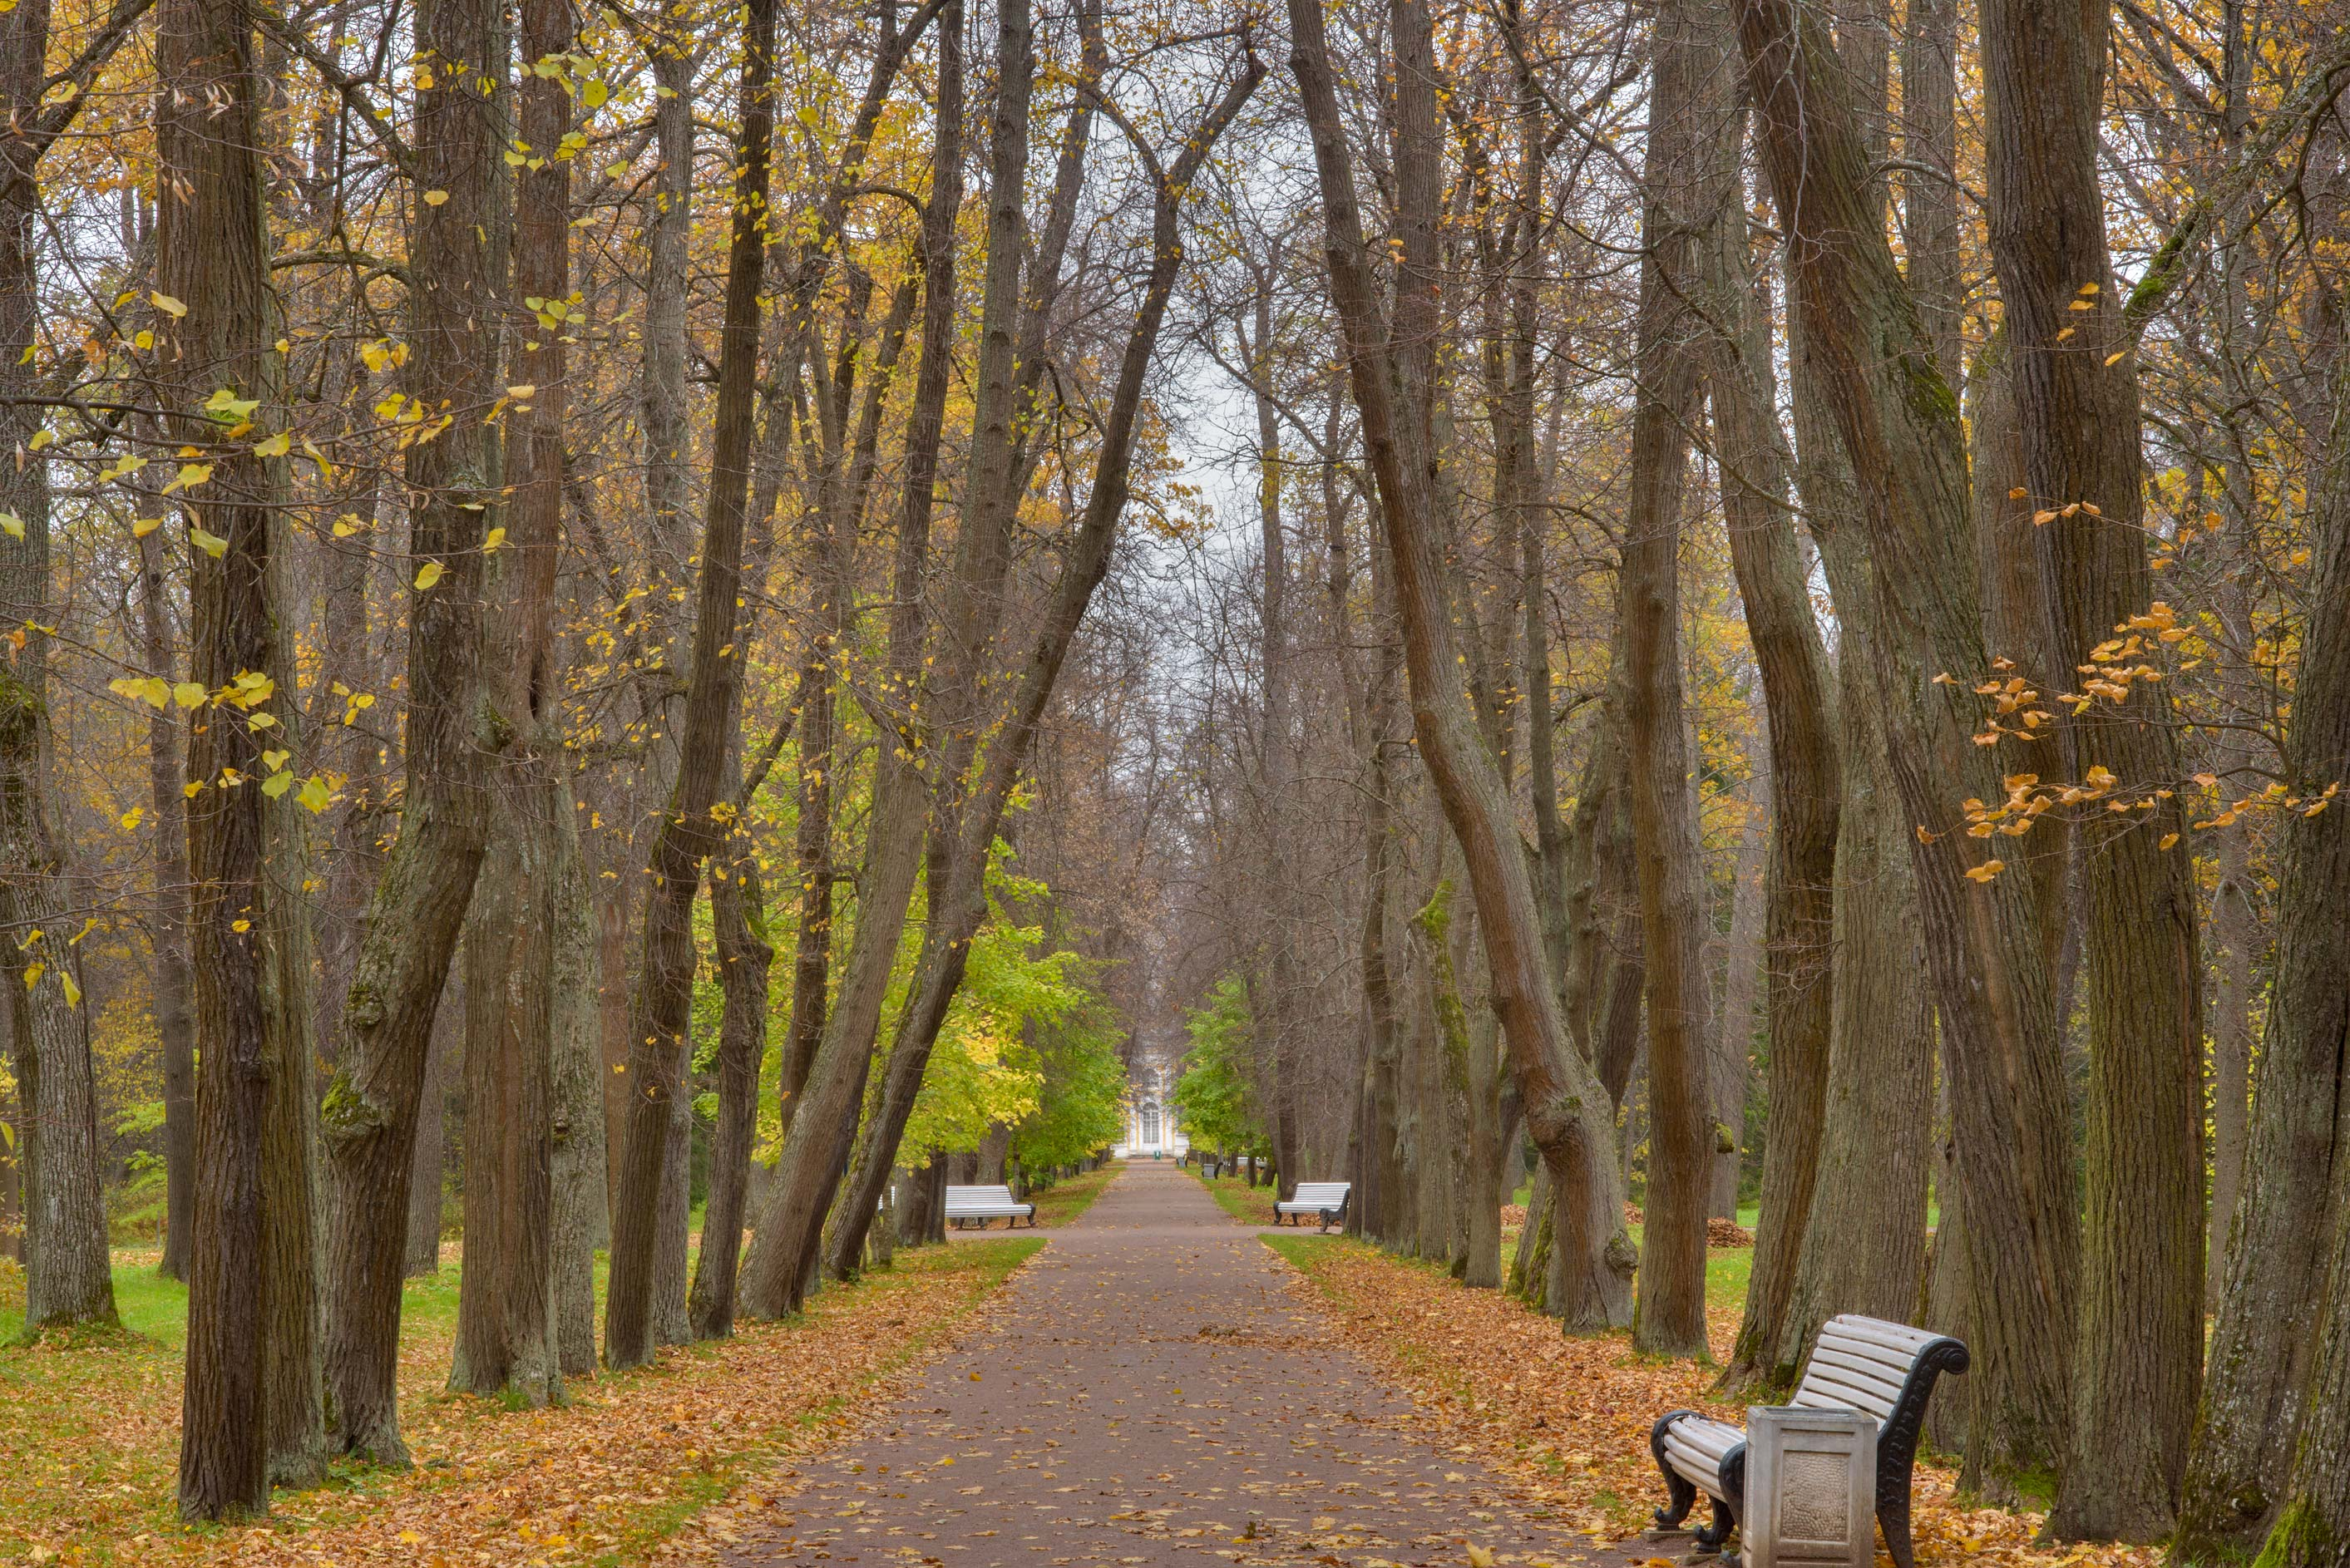 Linden Alley in Lomonosov (Oranienbaum). West from St.Petersburg, Russia